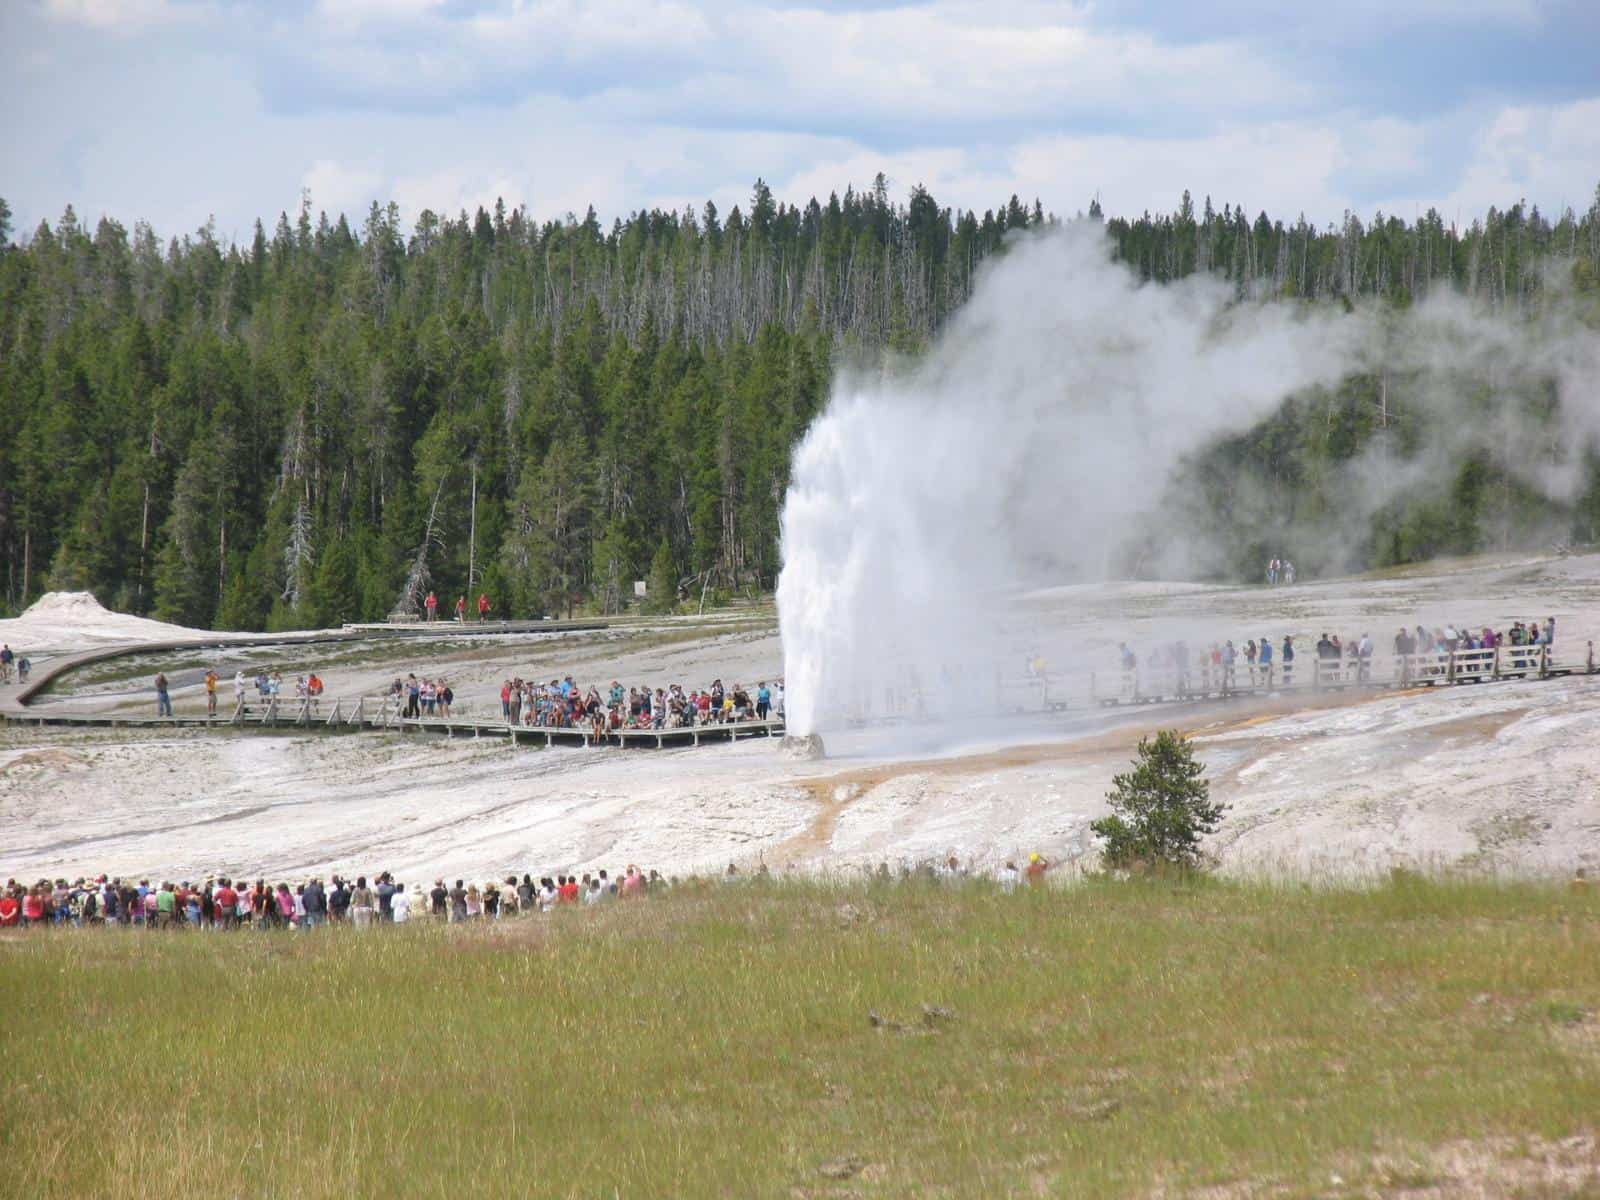 Best Geysers in Yellowstone - The Beehive Geyser